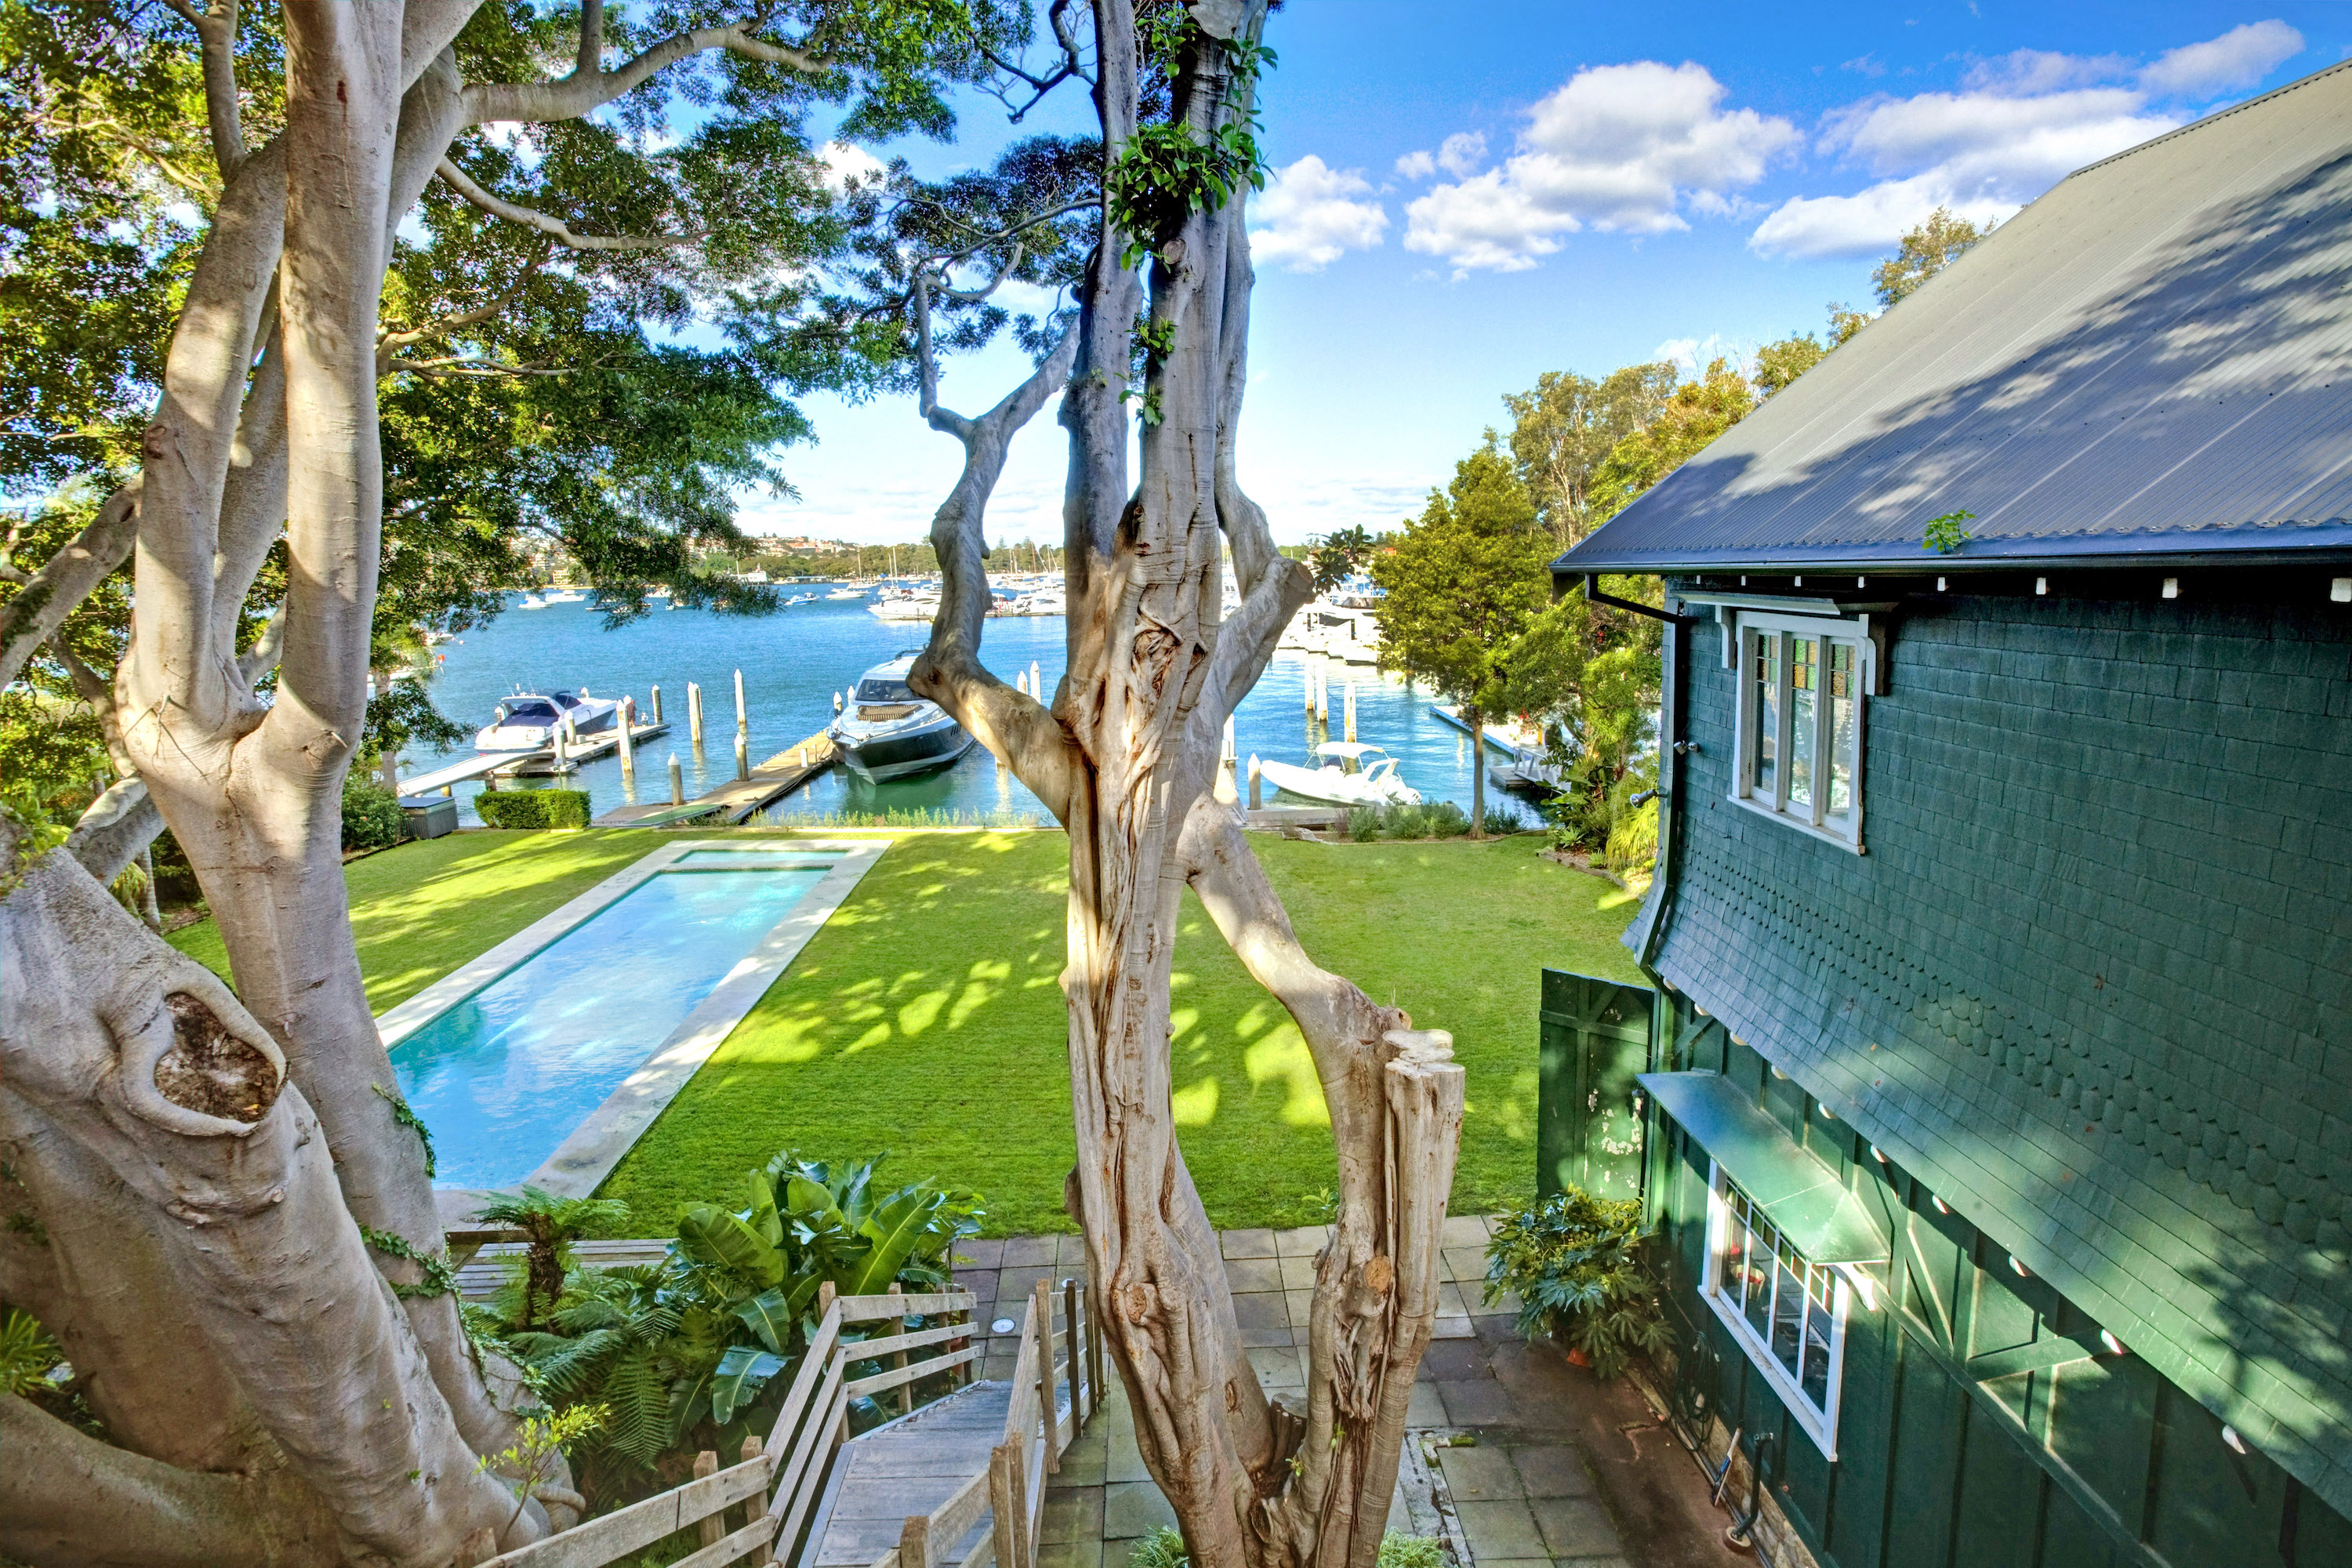 Residencial - Outro para Venda às The Boatshed 29a Wunulla Road Sydney, New South Wales, 2027 Austrália